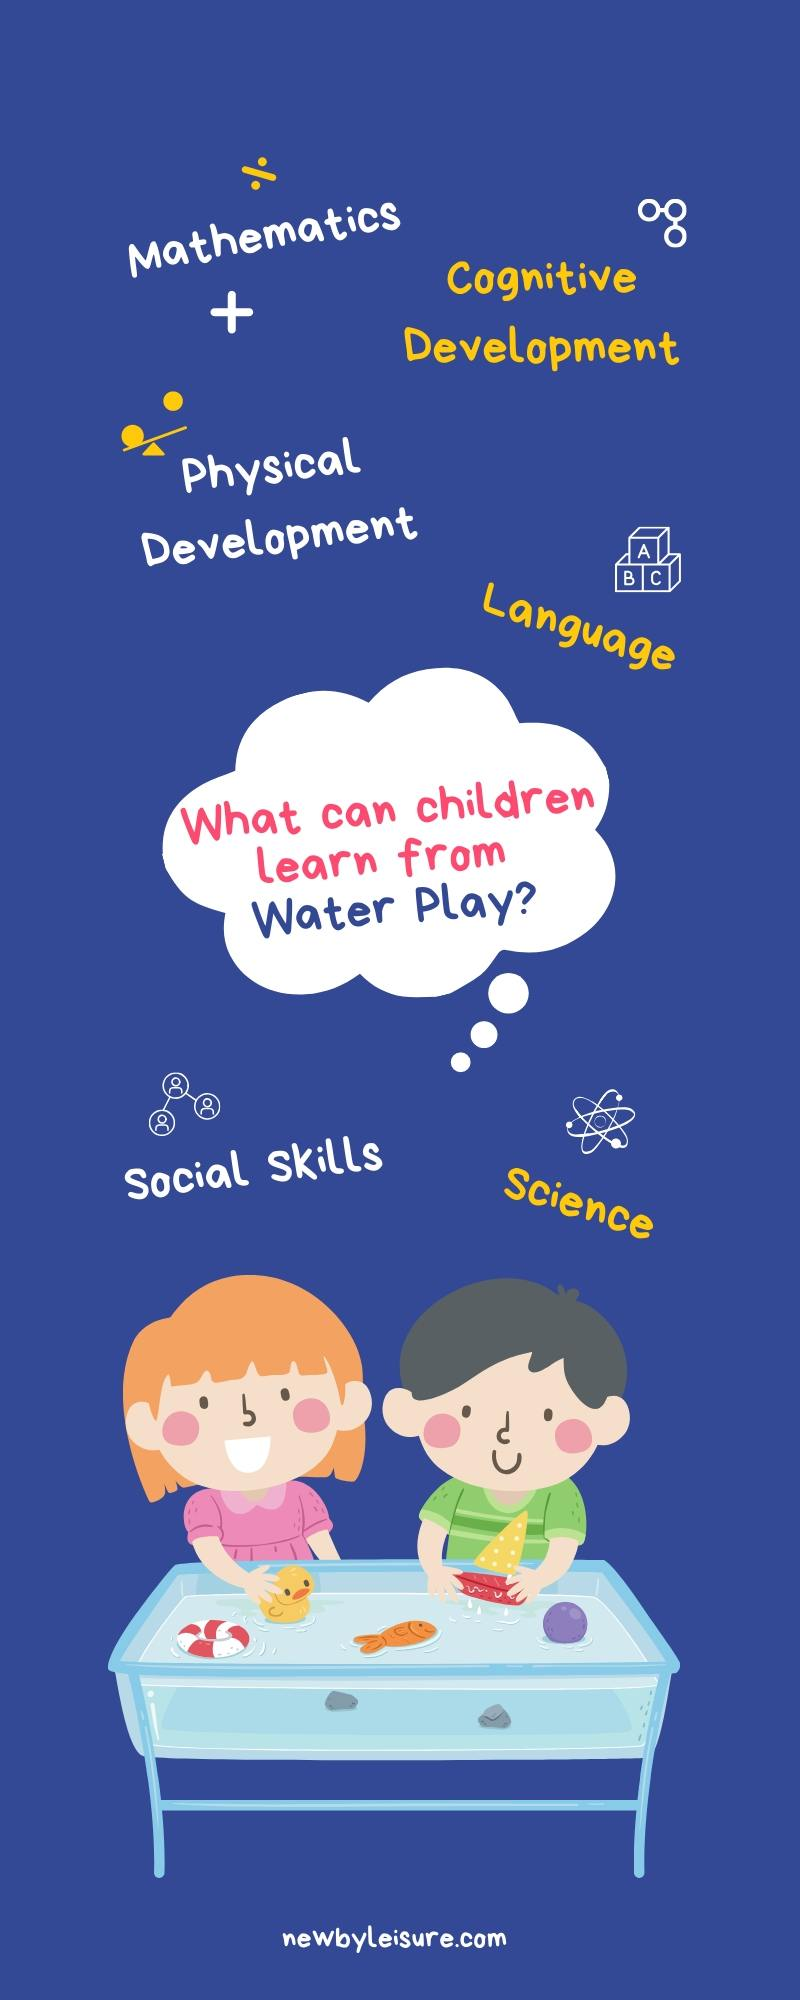 What can children learn from water play